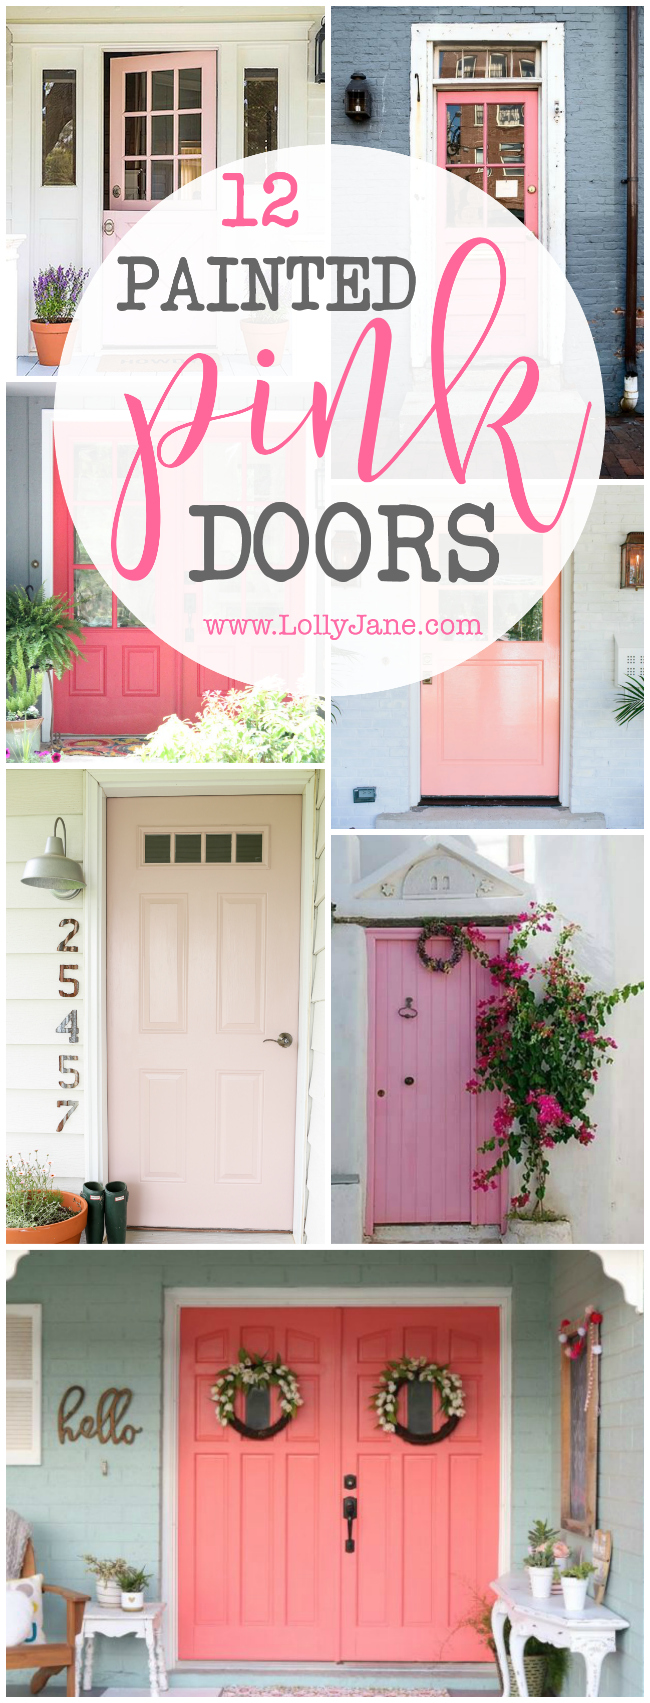 Ahh! Darling pink painted door ideas, yowzas! So cute! Adore all these painted pink doors for a colorful front porch!